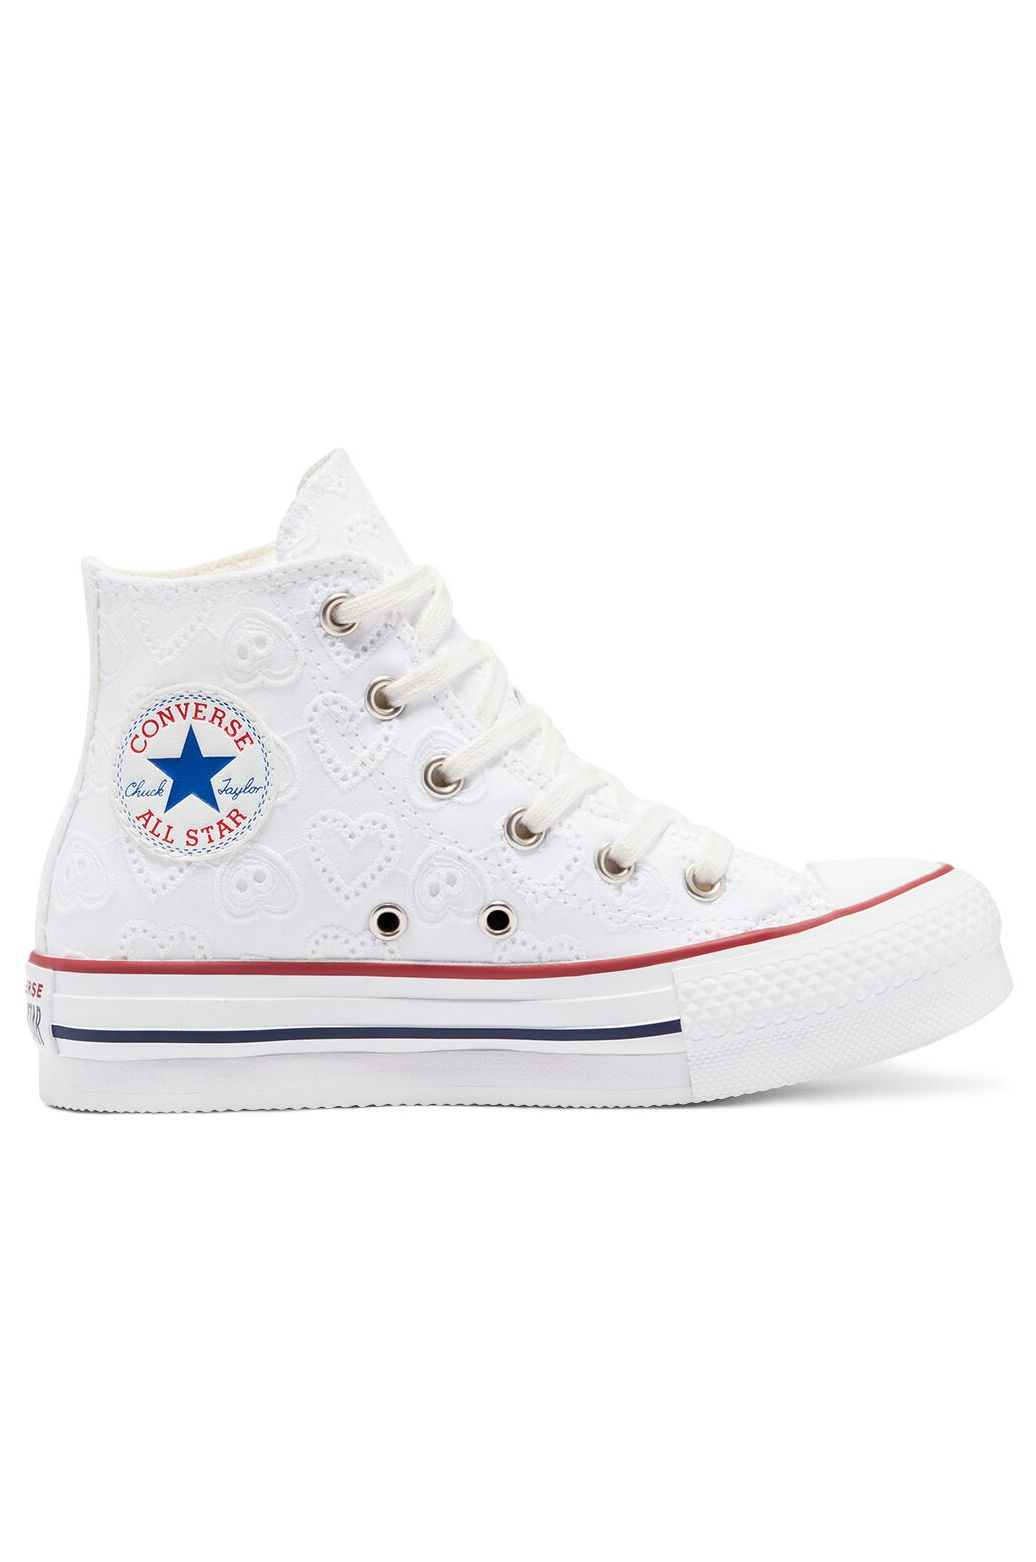 Tenis Converse CHUCK TAYLOR ALL STAR EVA LIFT HI White/Garnet/Midnight Navy